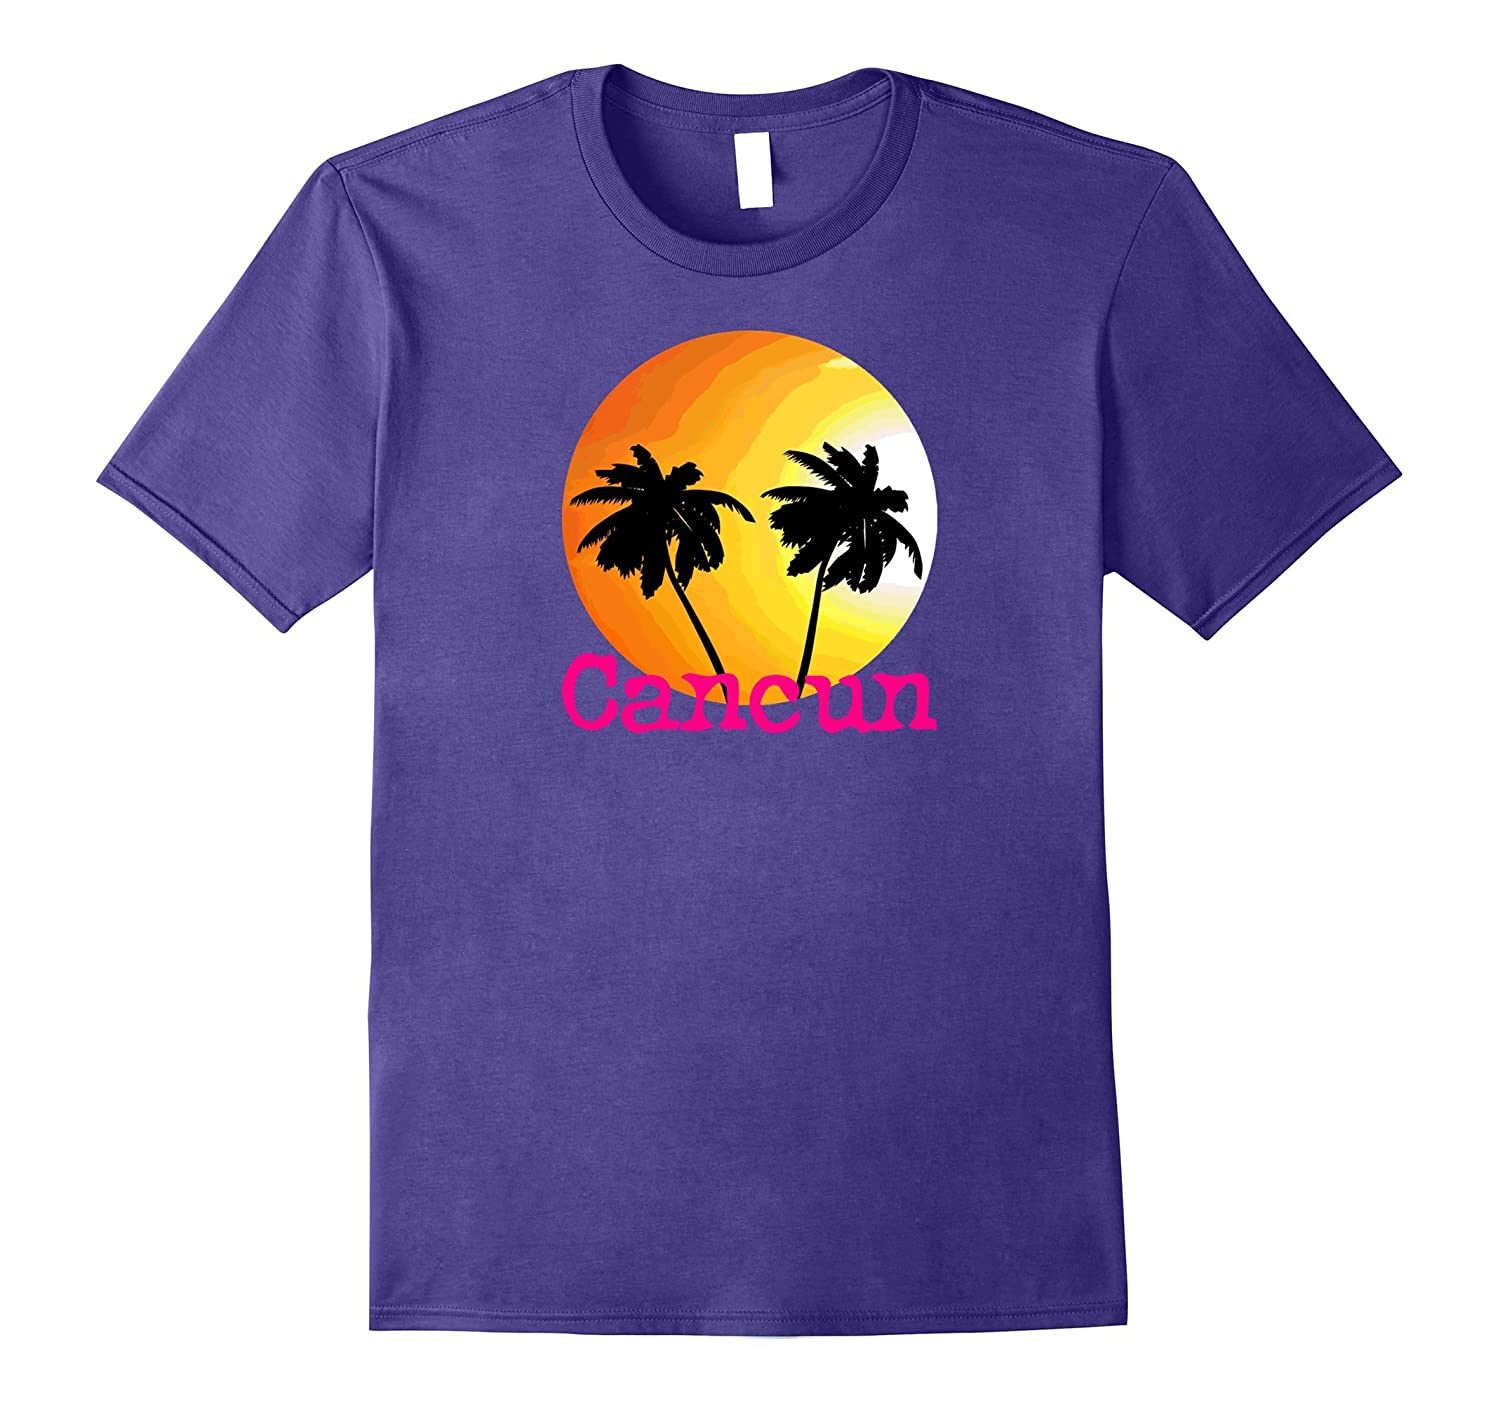 Cancun Sunset Palm Tree T-Shirt Beach Travel Tee Shirt-TH